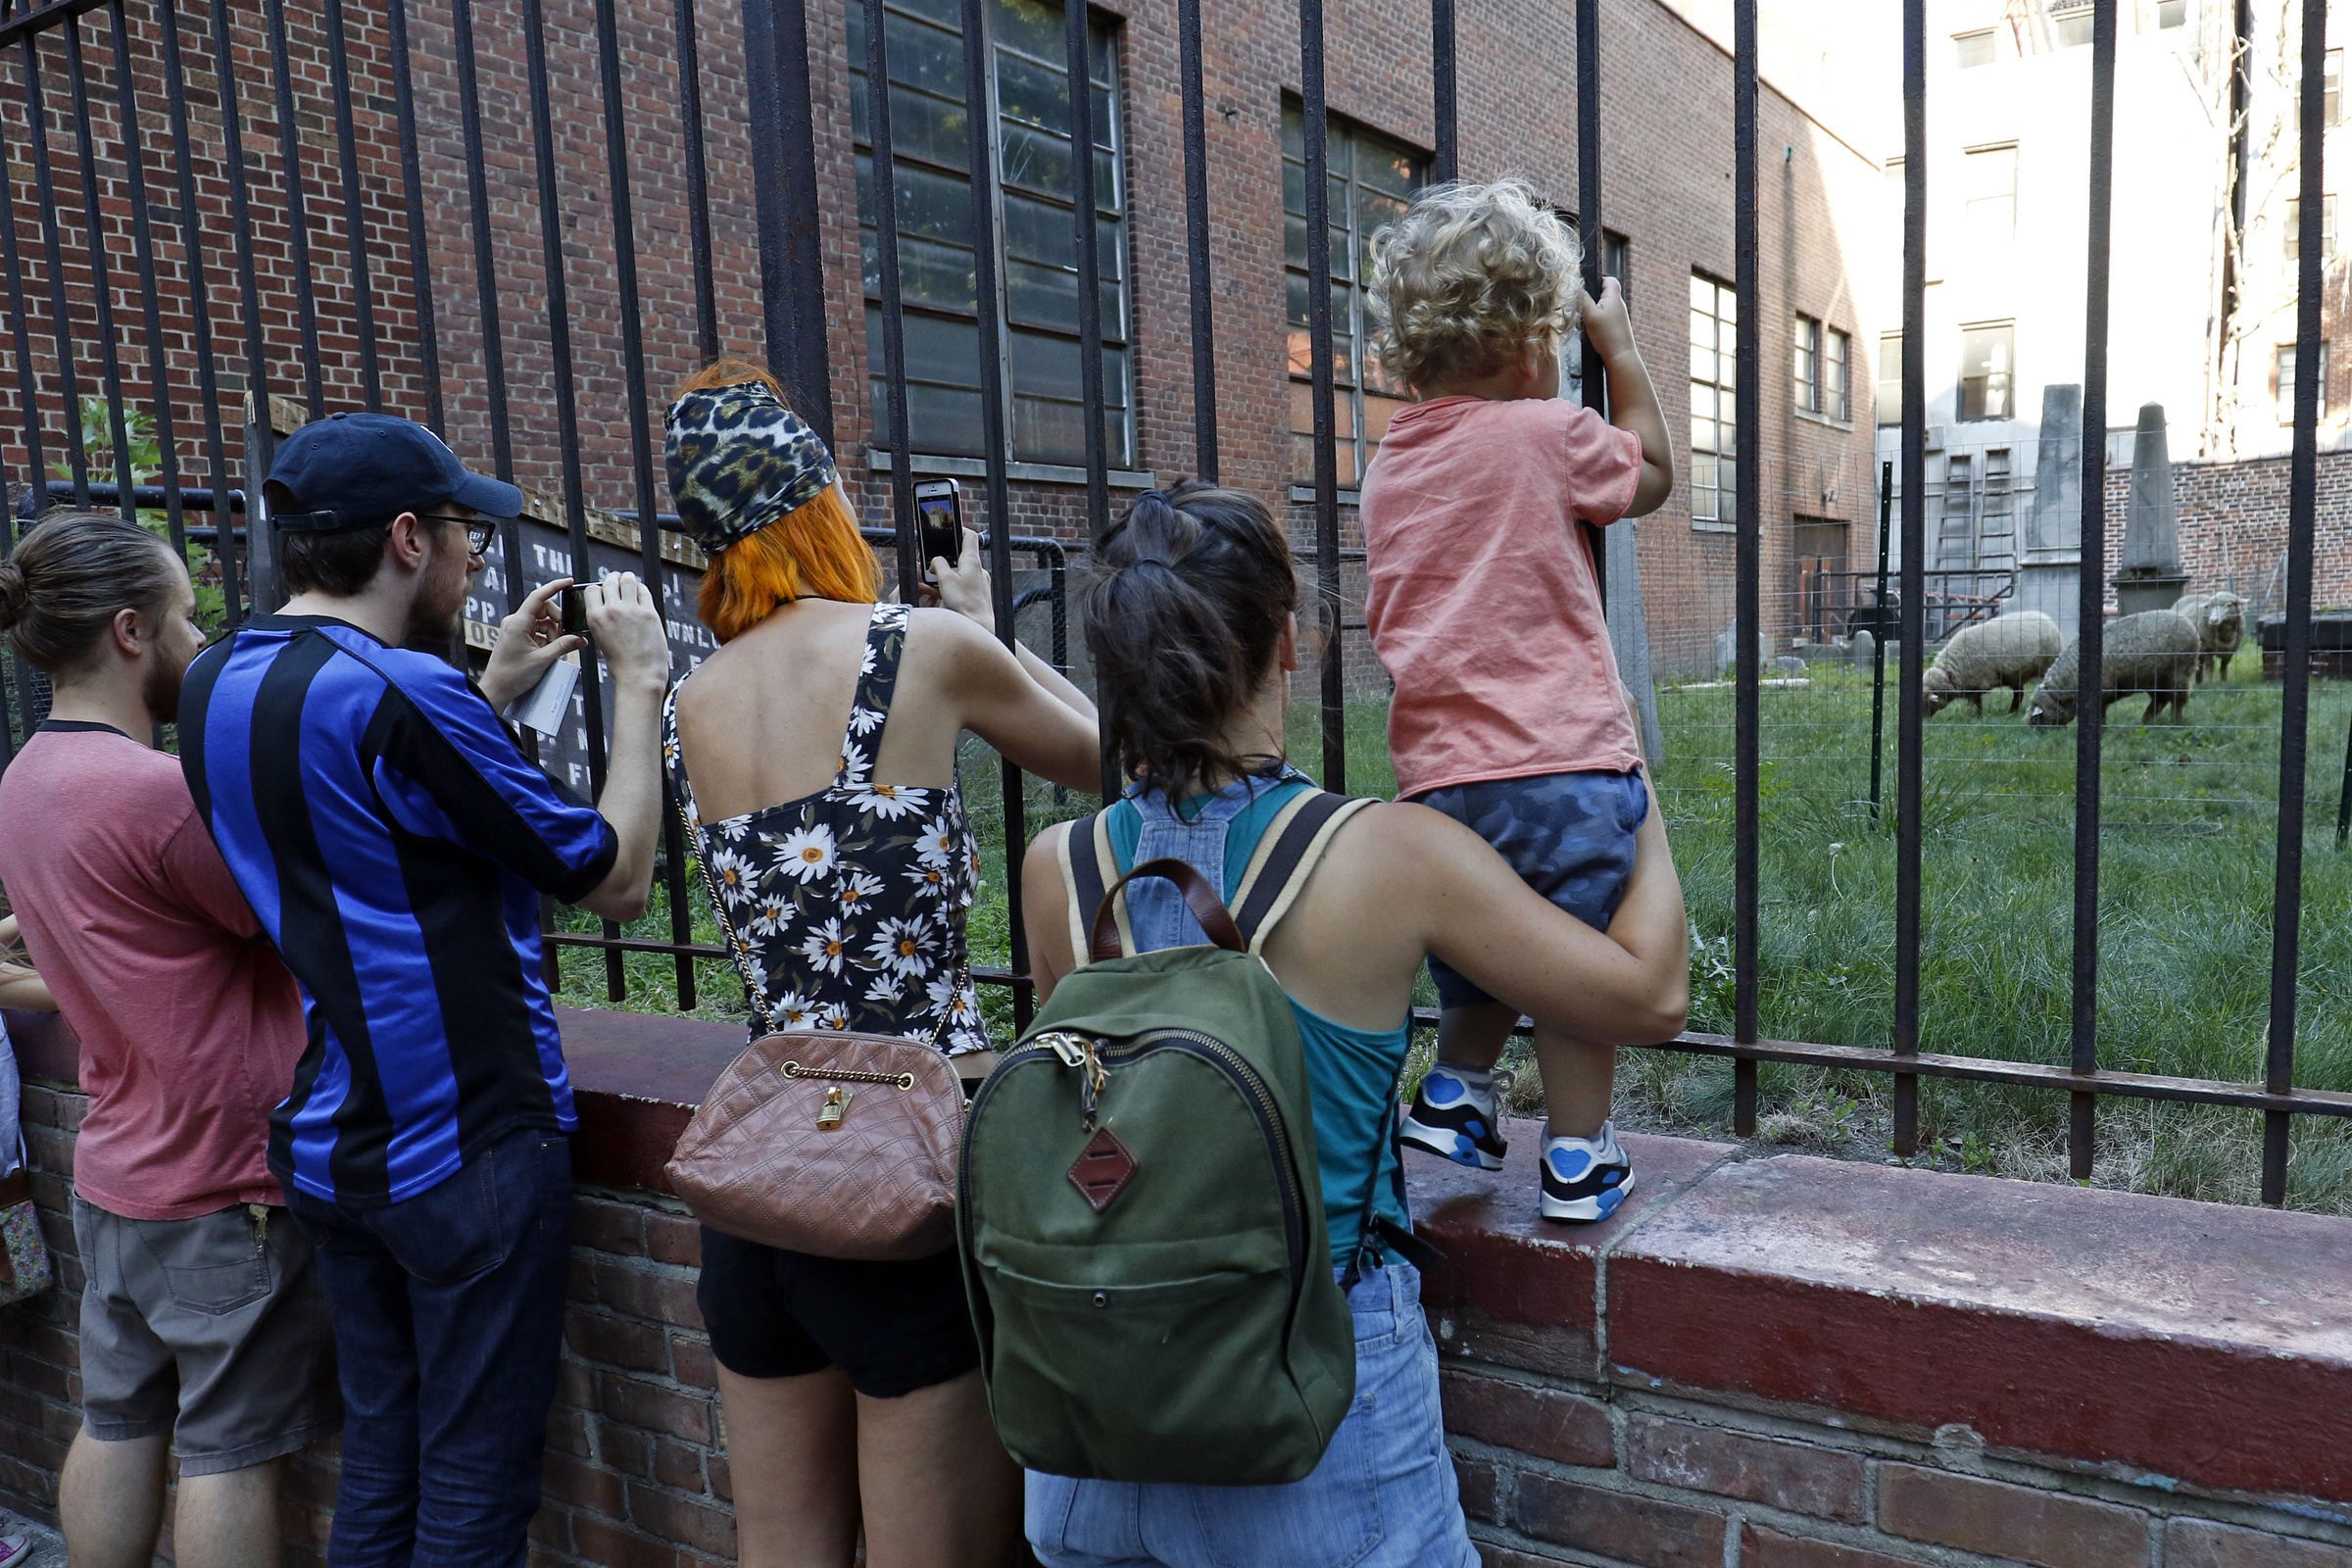 People gather to look at sheep in the cemetery at the Basilica of St. Patrick's Old Cathedral in New York City Aug. 9. The parish is using three grazing sheep to cut the graveyard's grass this summer. (CNS photo/Gregory A. Shemitz)